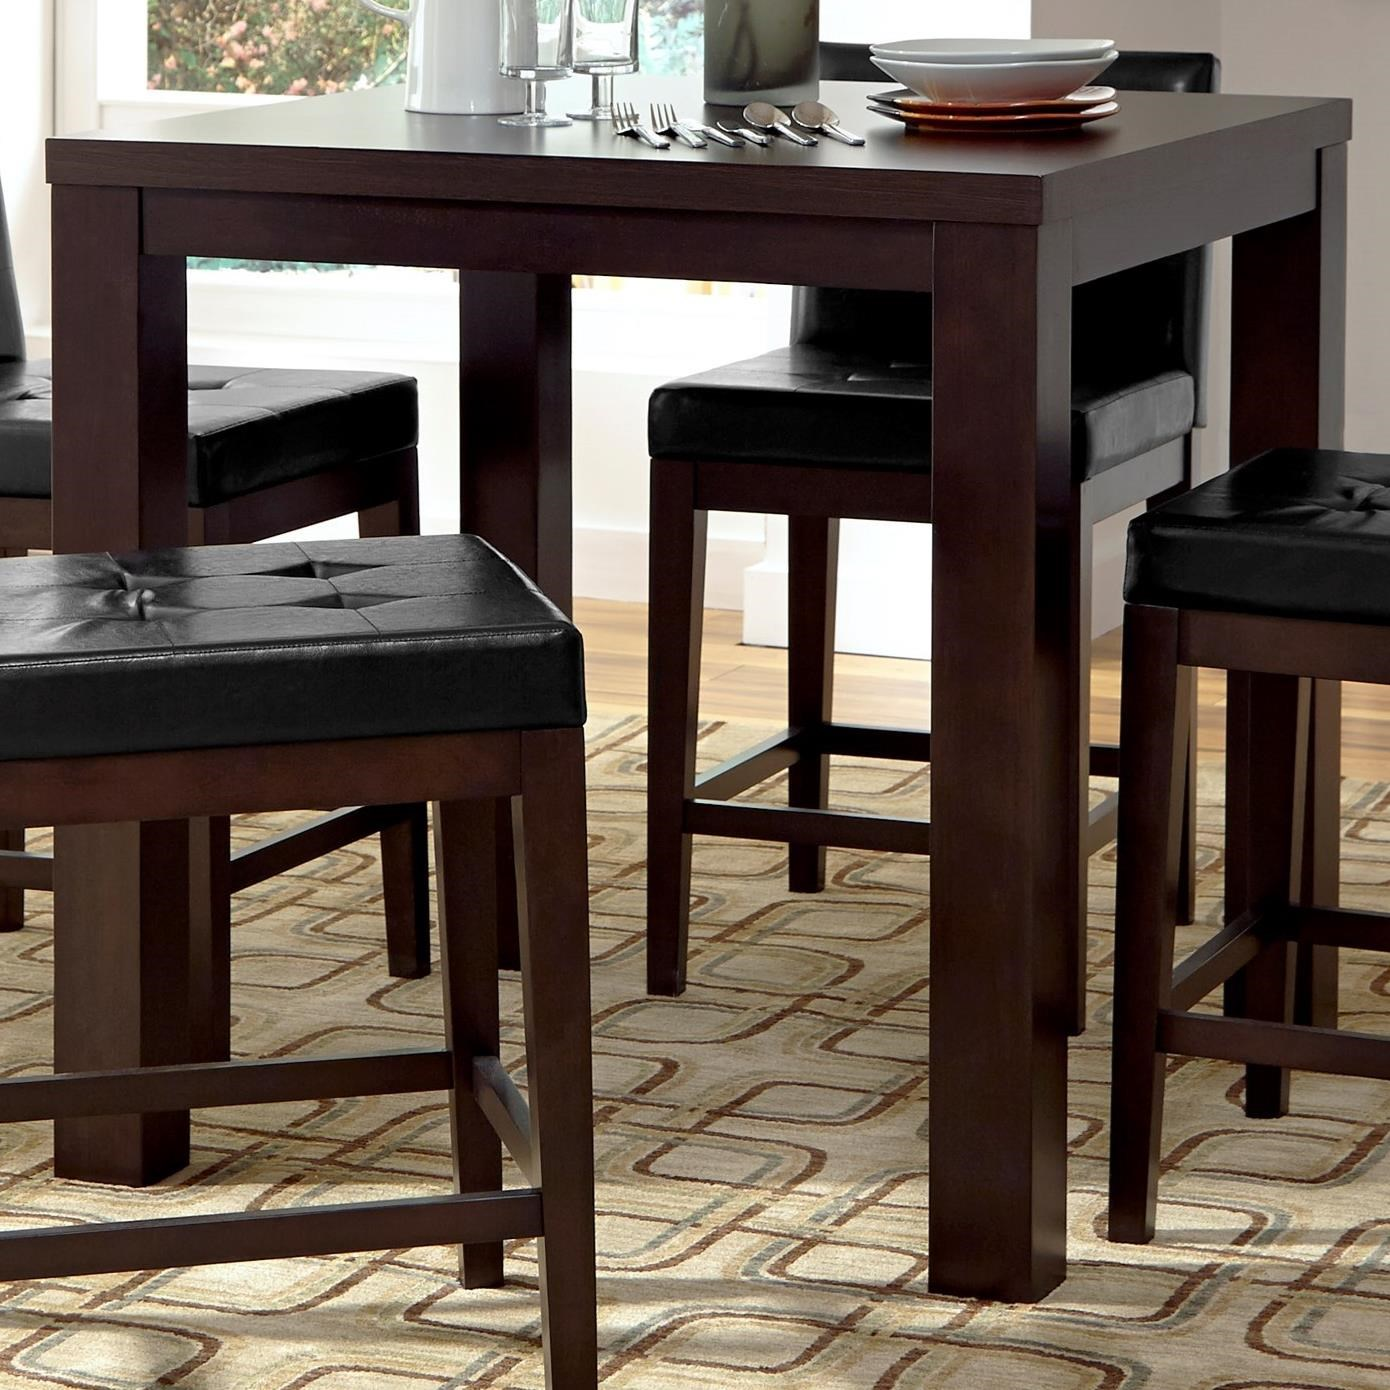 Athena Square Counter Height Dining Table by Progressive Furniture at Carolina Direct